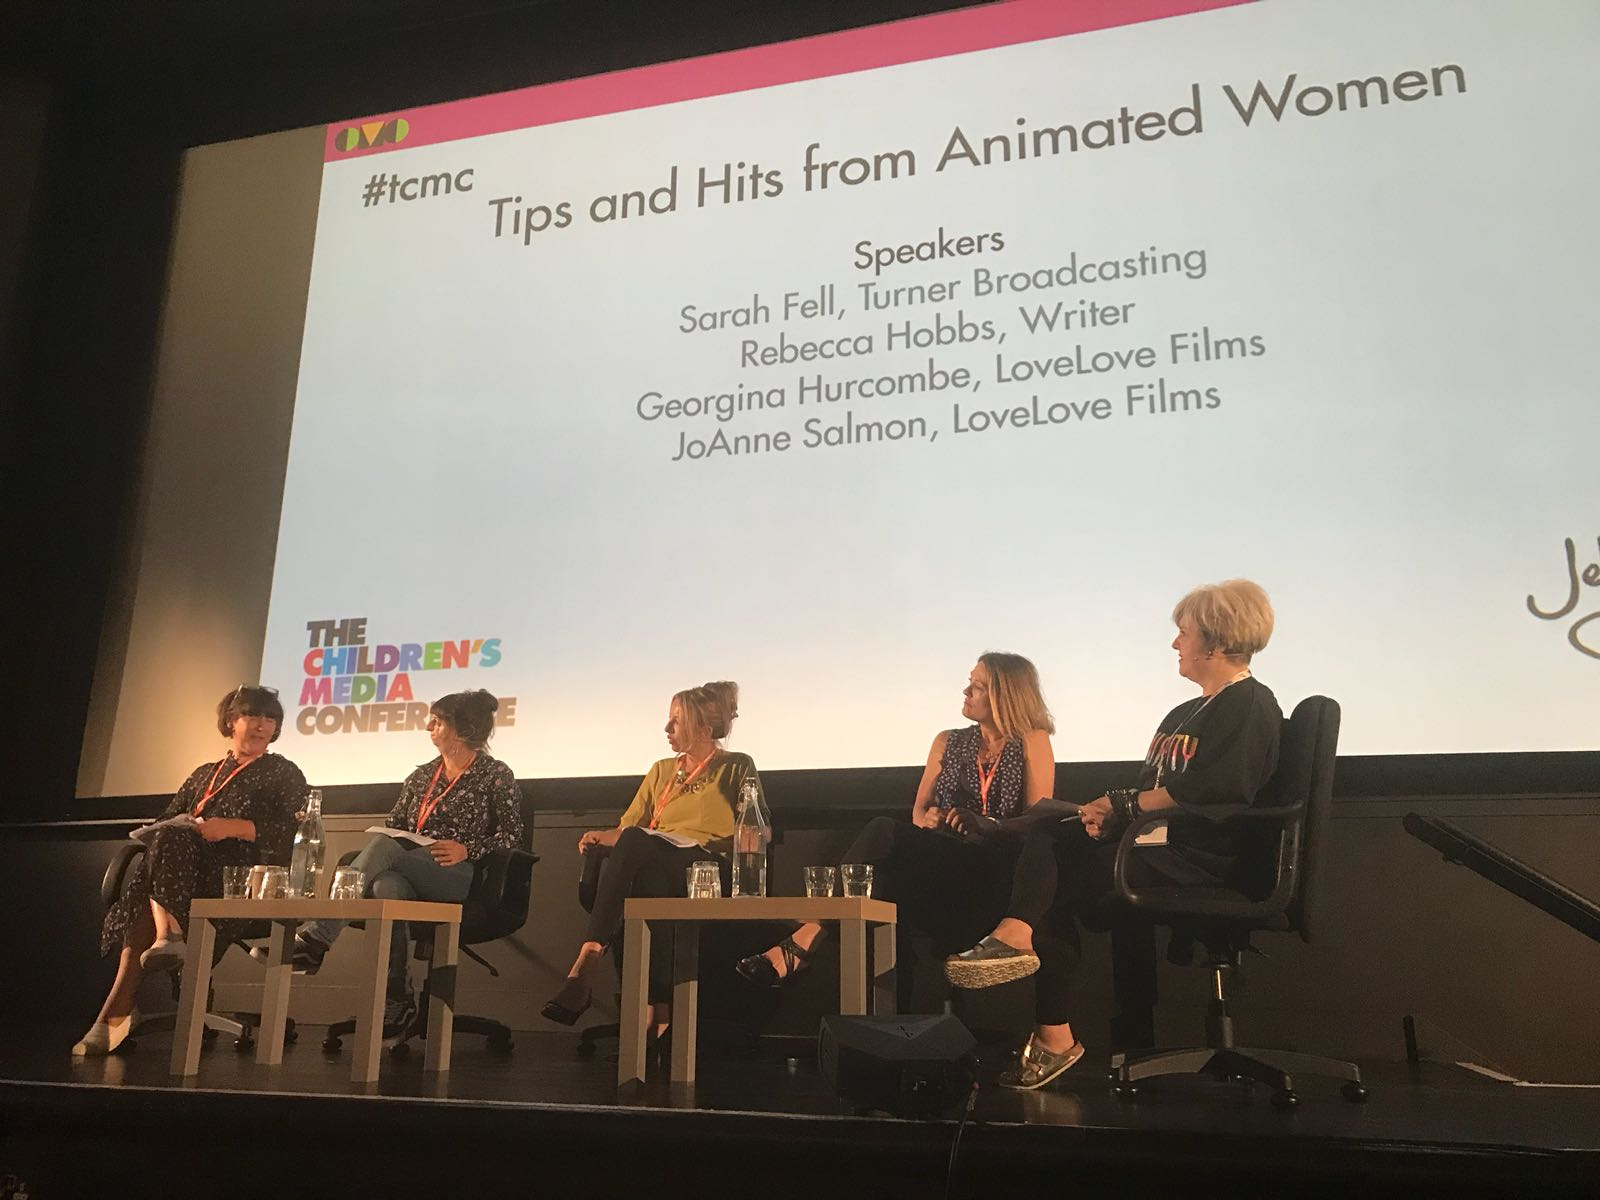 CMC 2018 | Tips and Hits from Animated Women